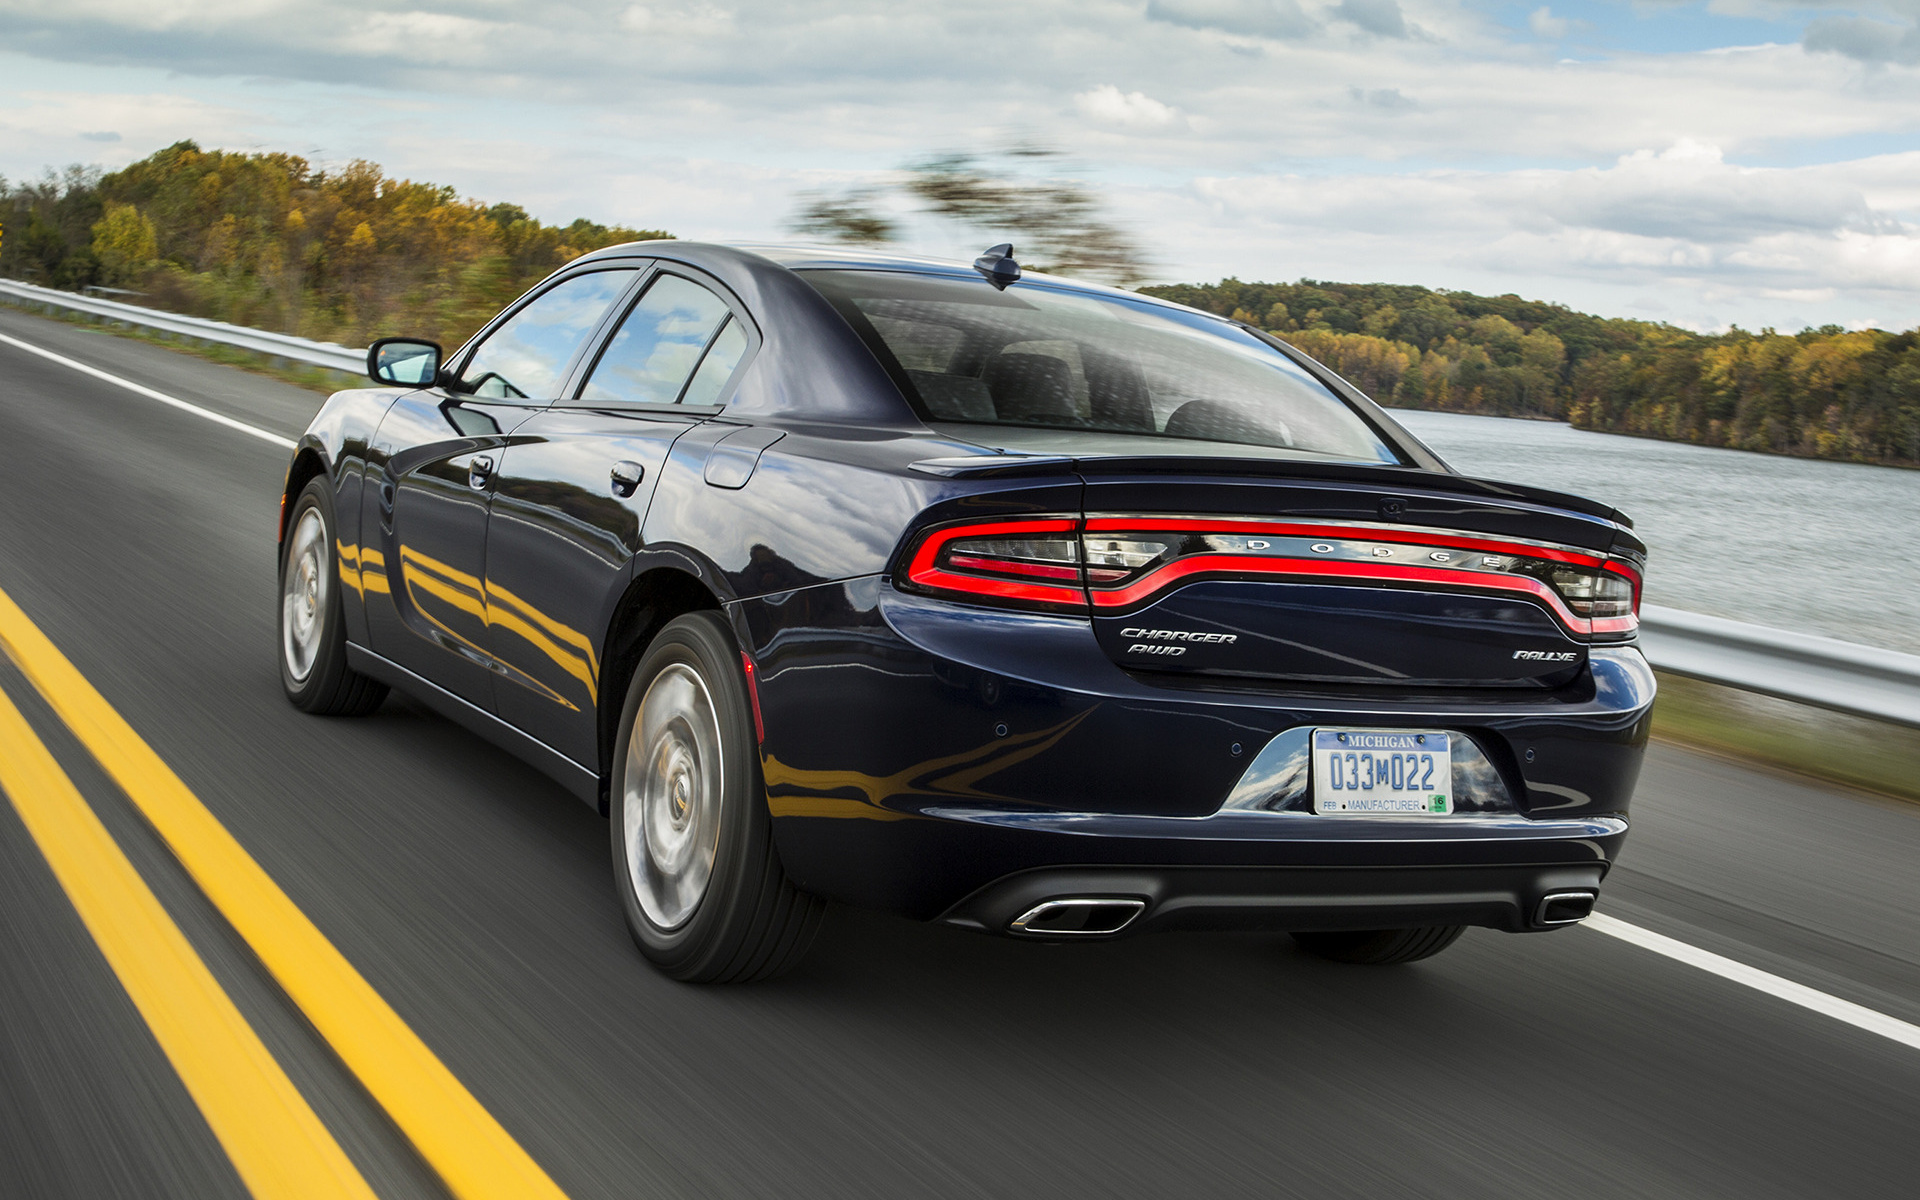 dodge charger sxt rallye awd 2015 wallpapers and hd images car pixel. Black Bedroom Furniture Sets. Home Design Ideas